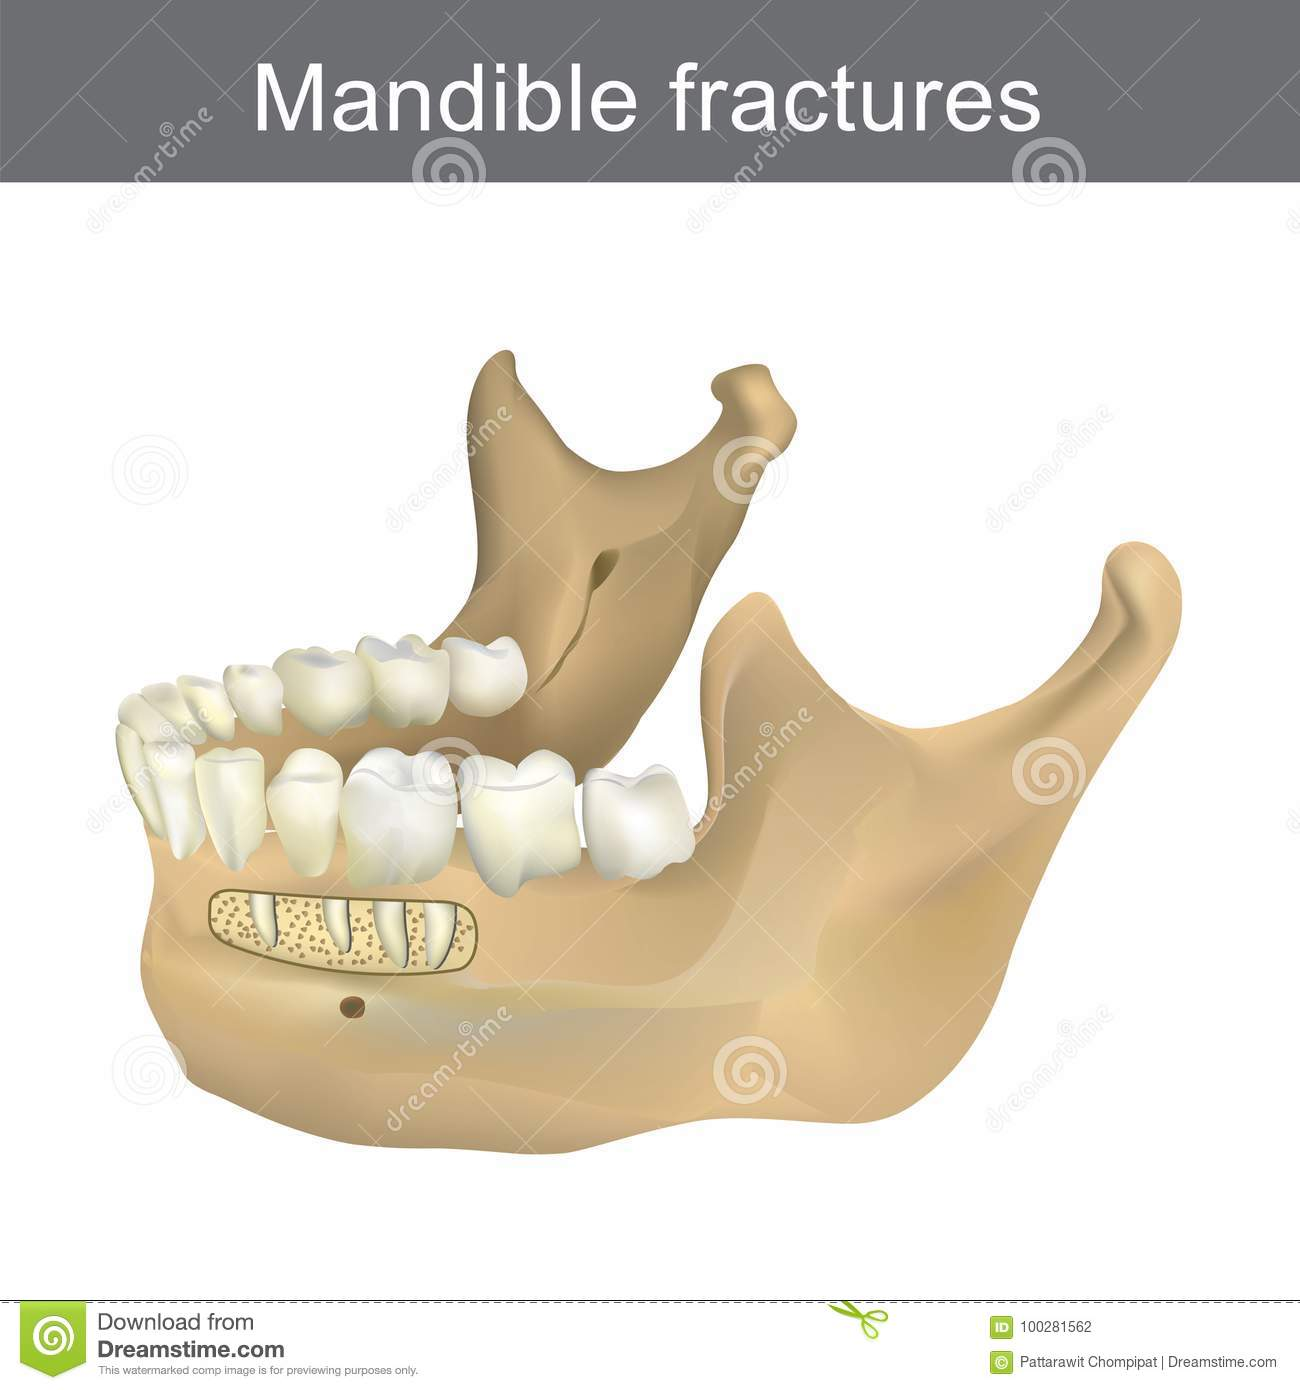 Mandible Fractures Is The Largest, Strongest And Lowest Bone In ...